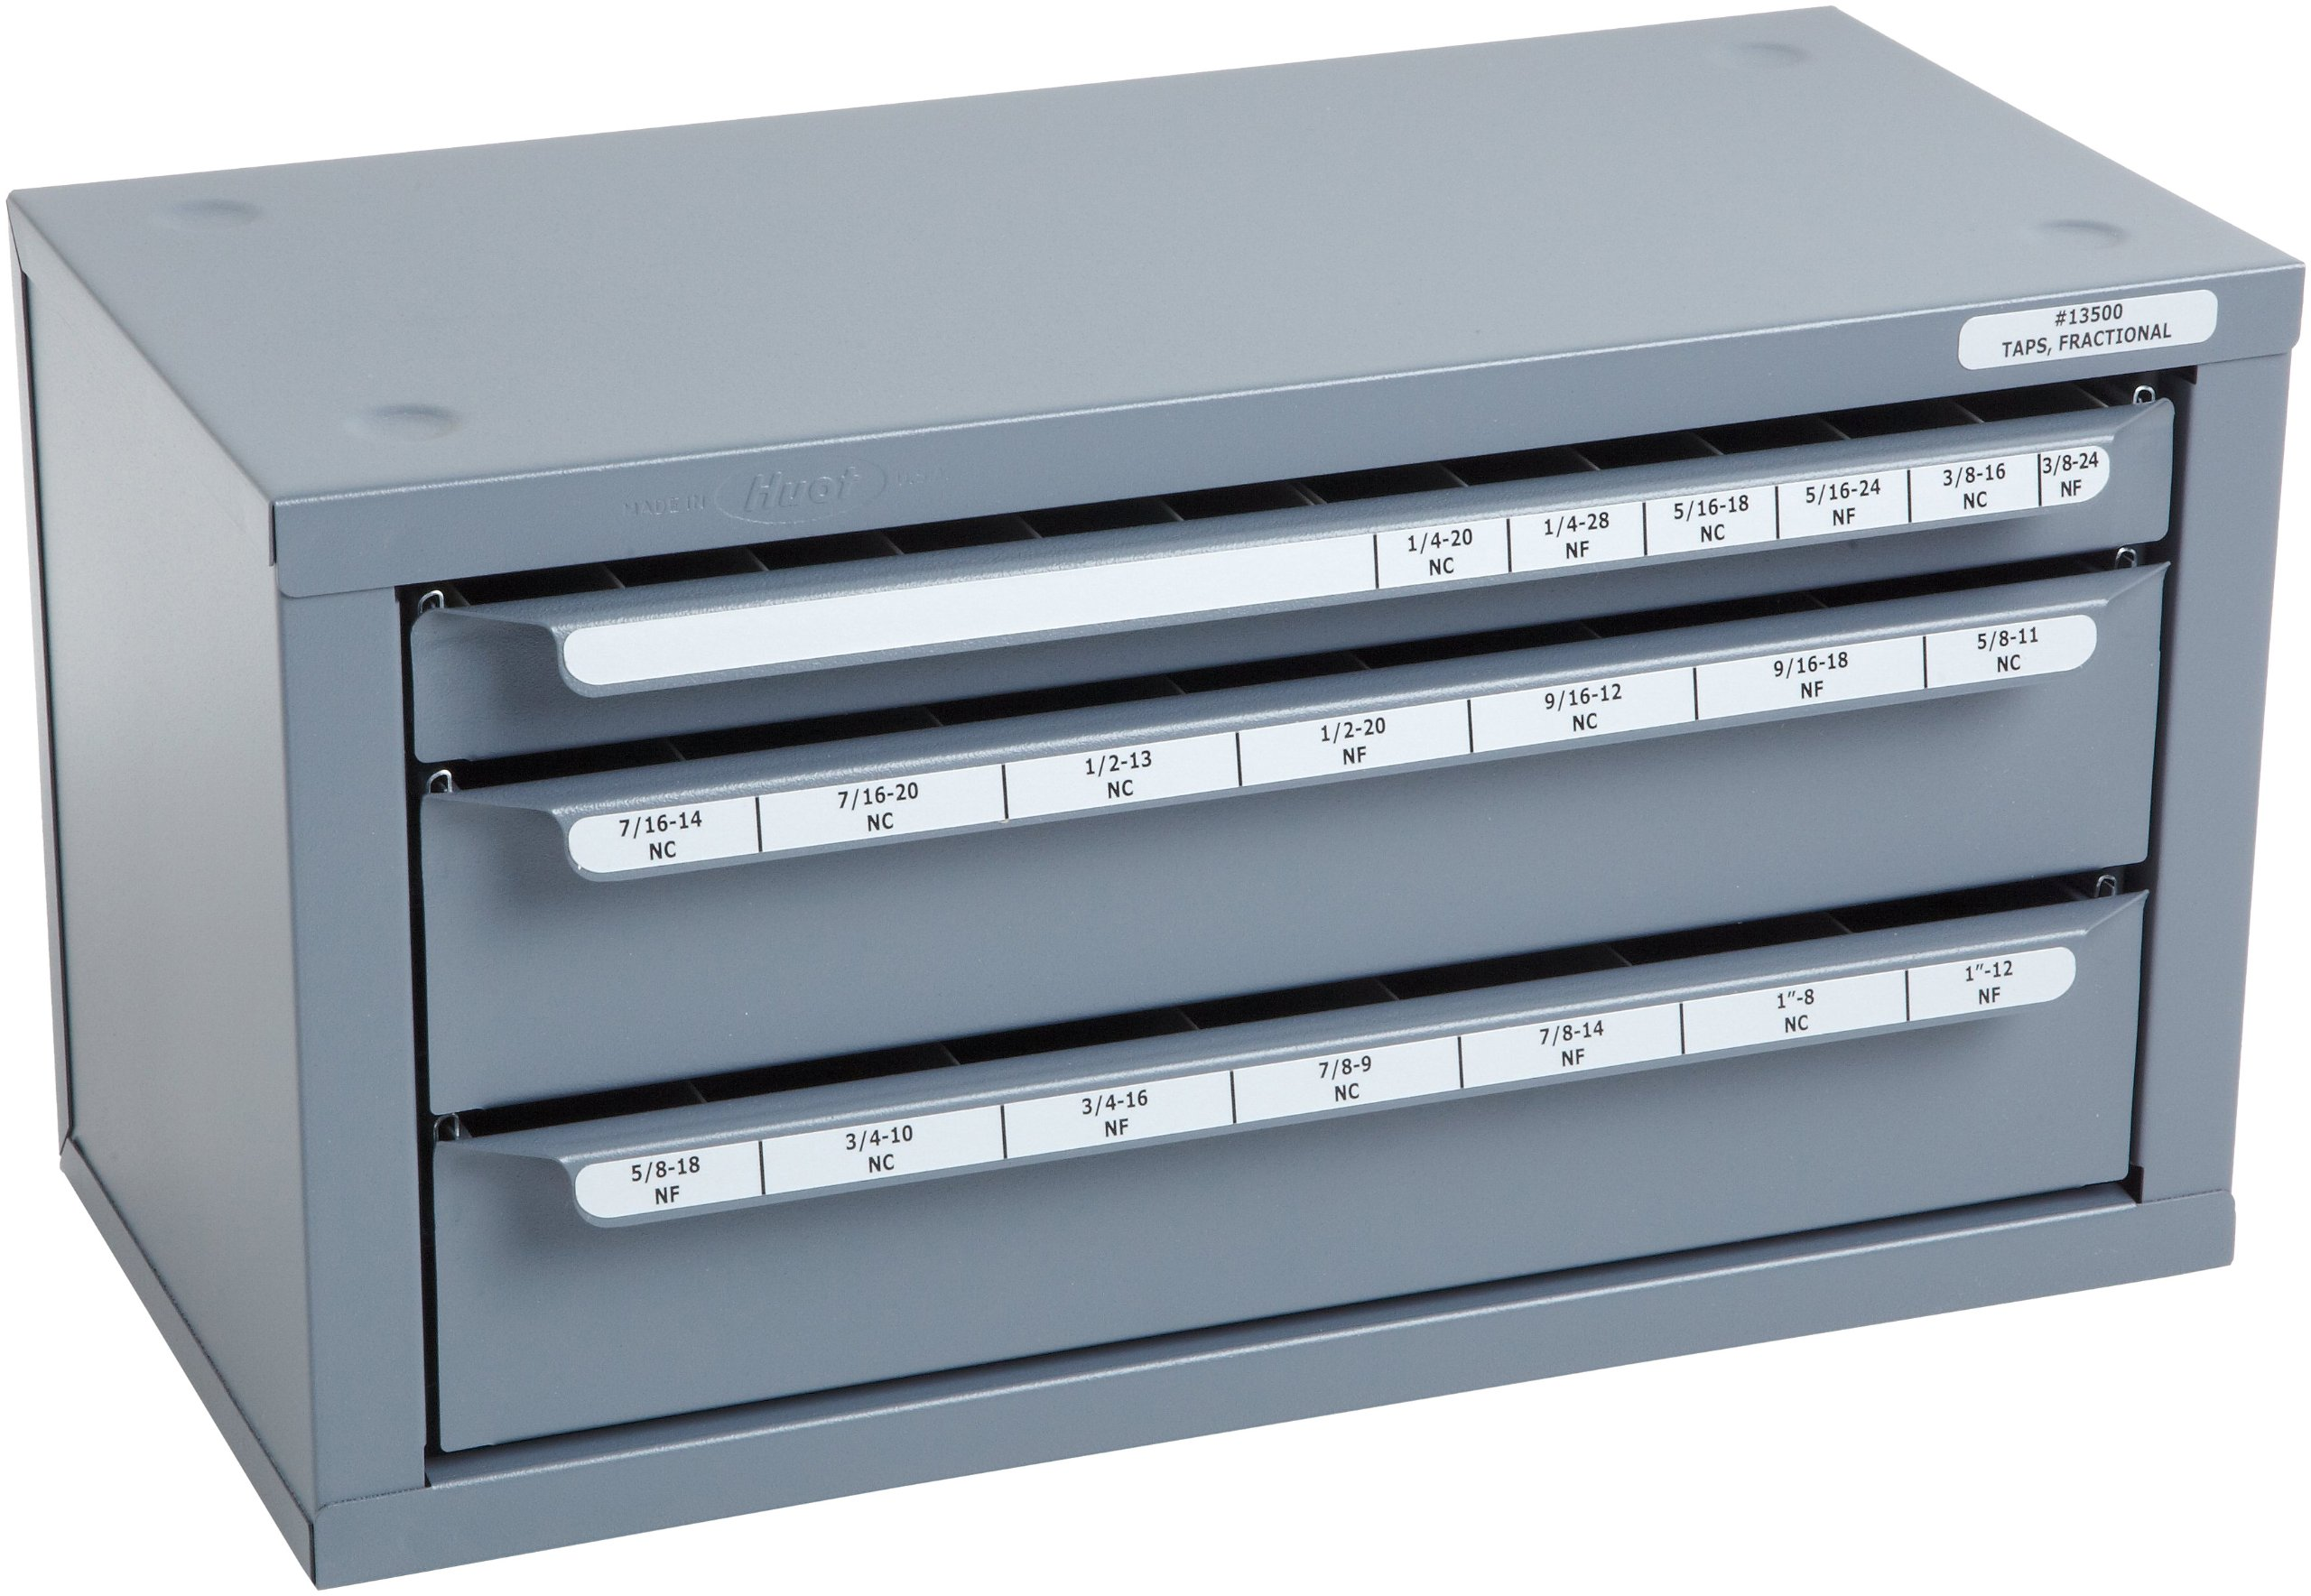 Huot 13500 Three-Drawer Fractional Tap Dispenser Cabinet for Fractional Sizes 1/4''-20 to 1''-12